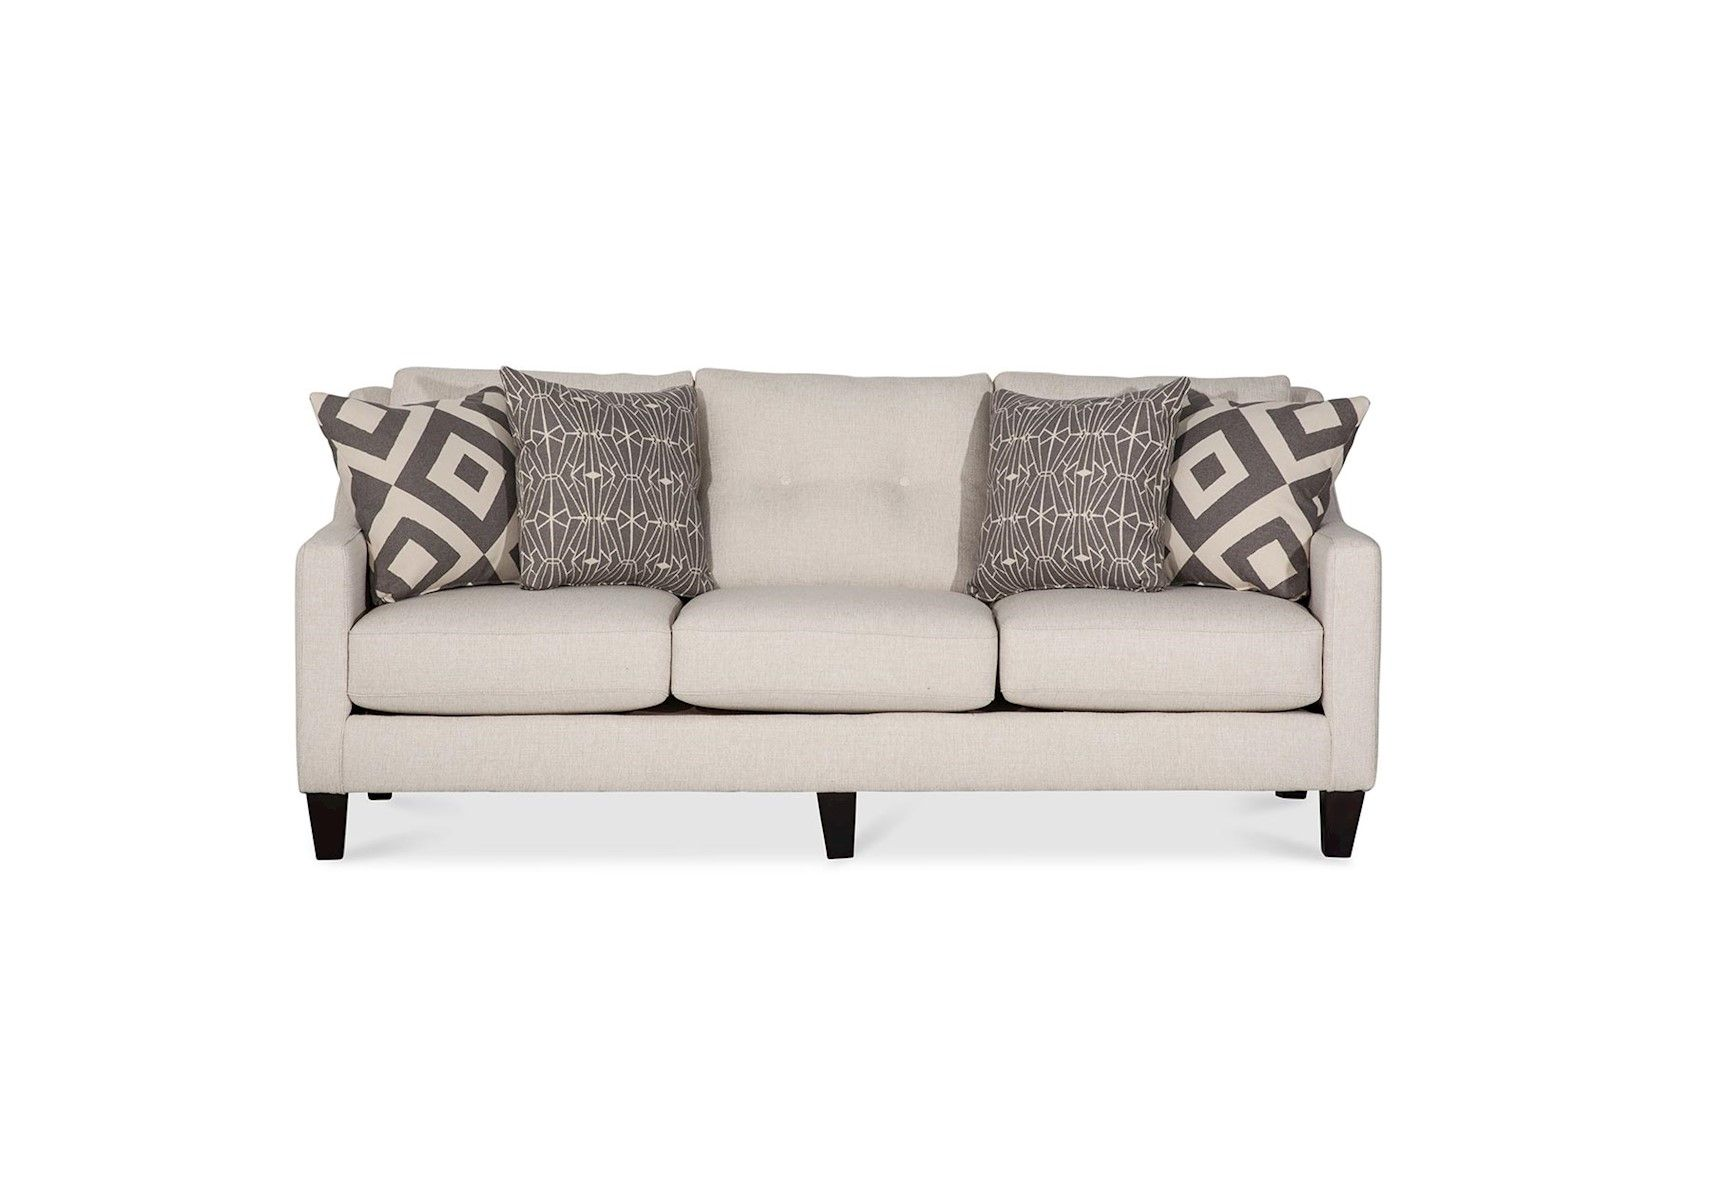 Lacks Valley Sugar Shack Glacier Sofa Home